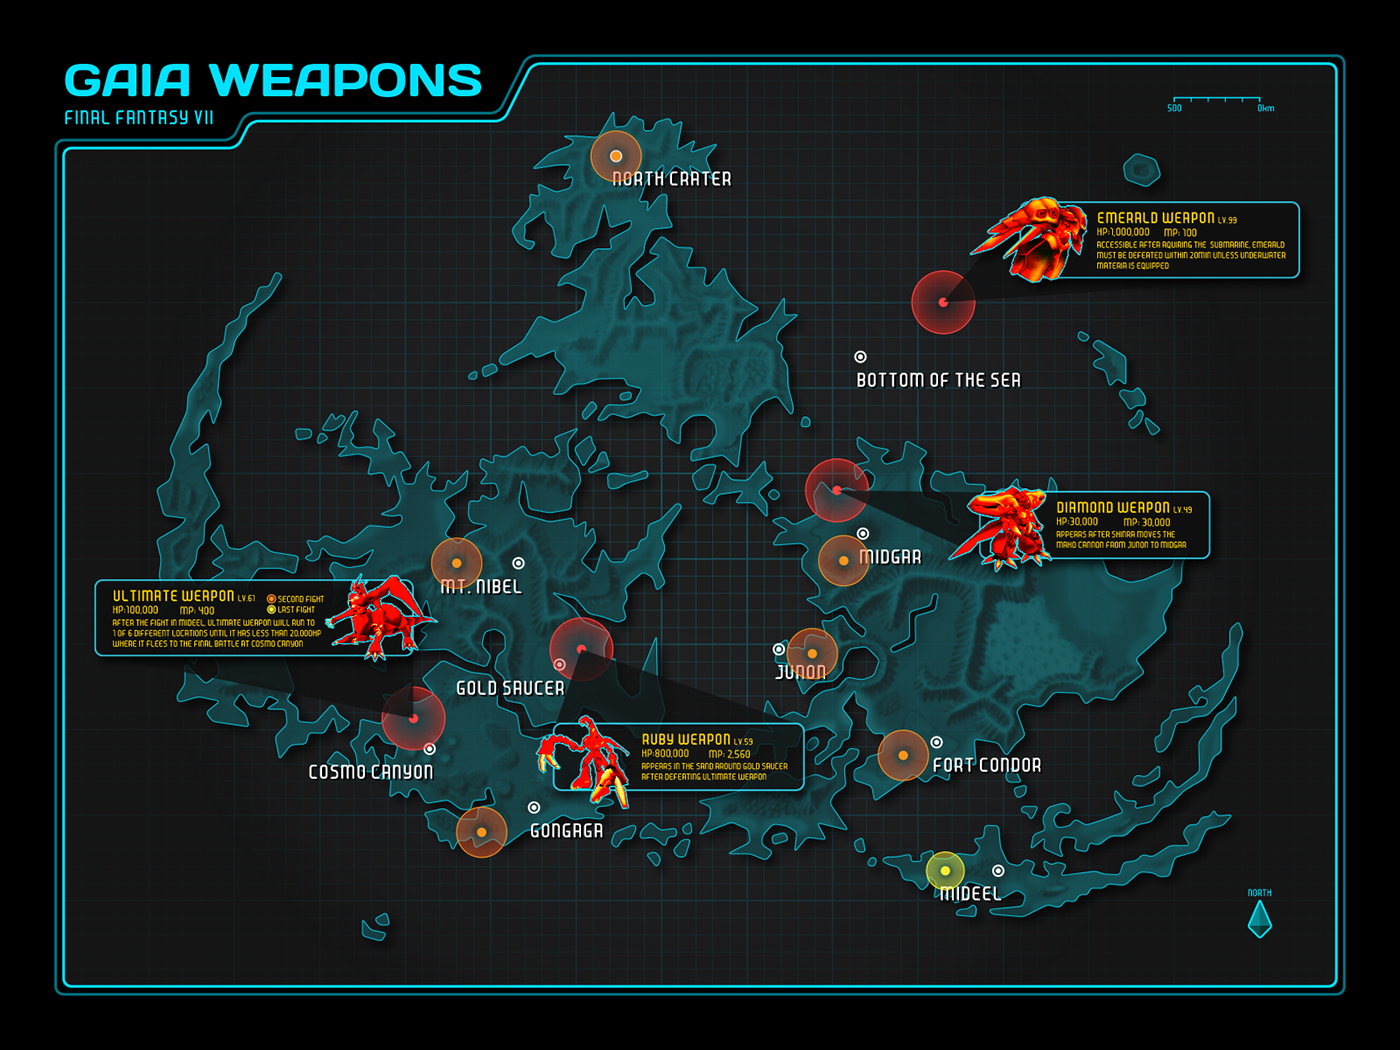 Final Fantasy VII: Weapons Map on Behance